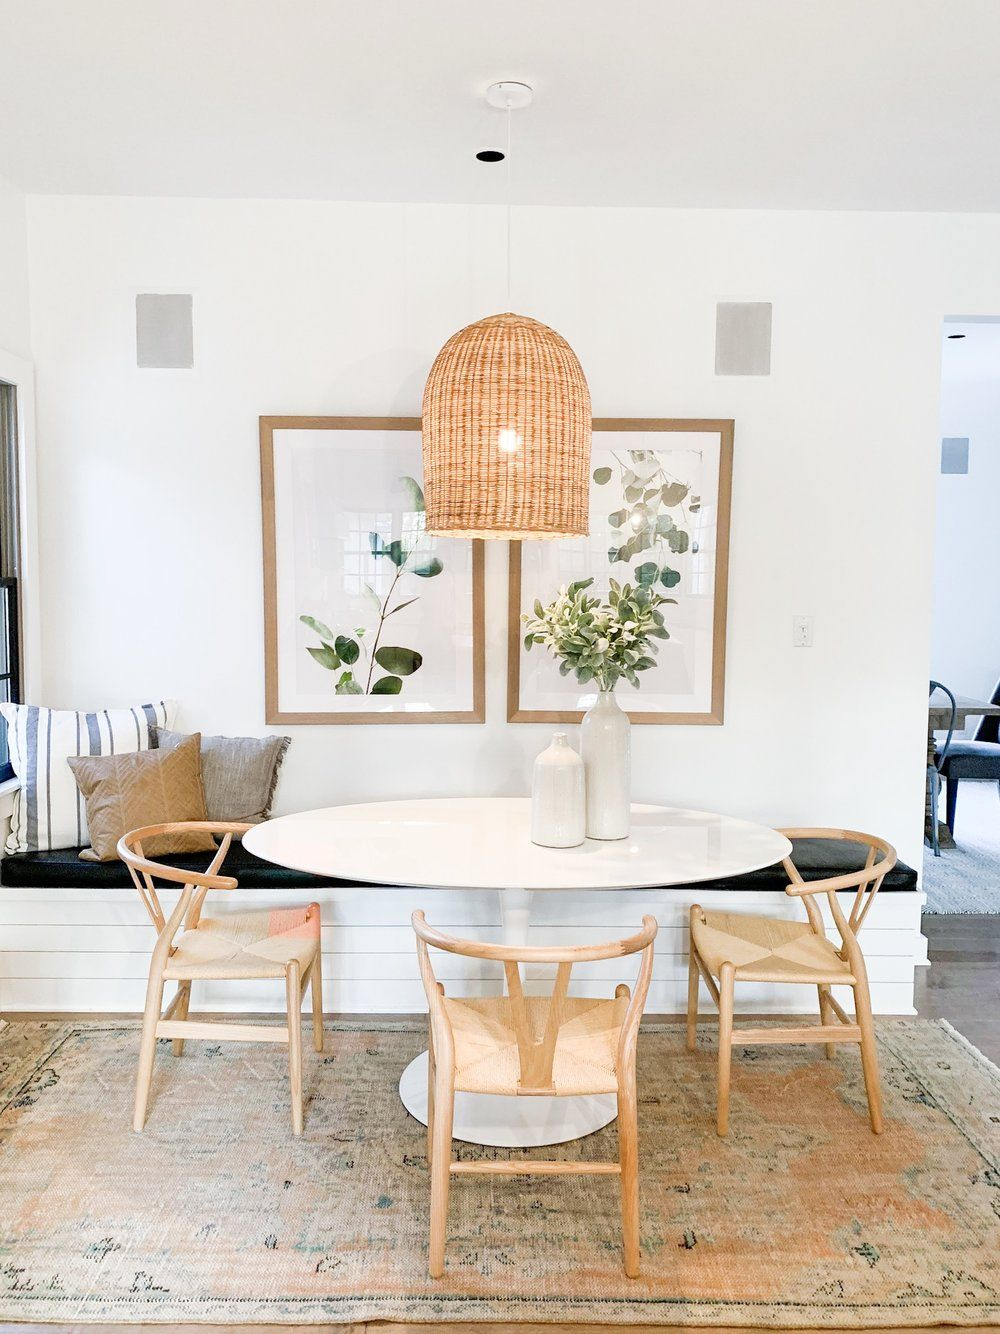 Pendant Light Over White Oval Table And Wishbone Chairs Dining